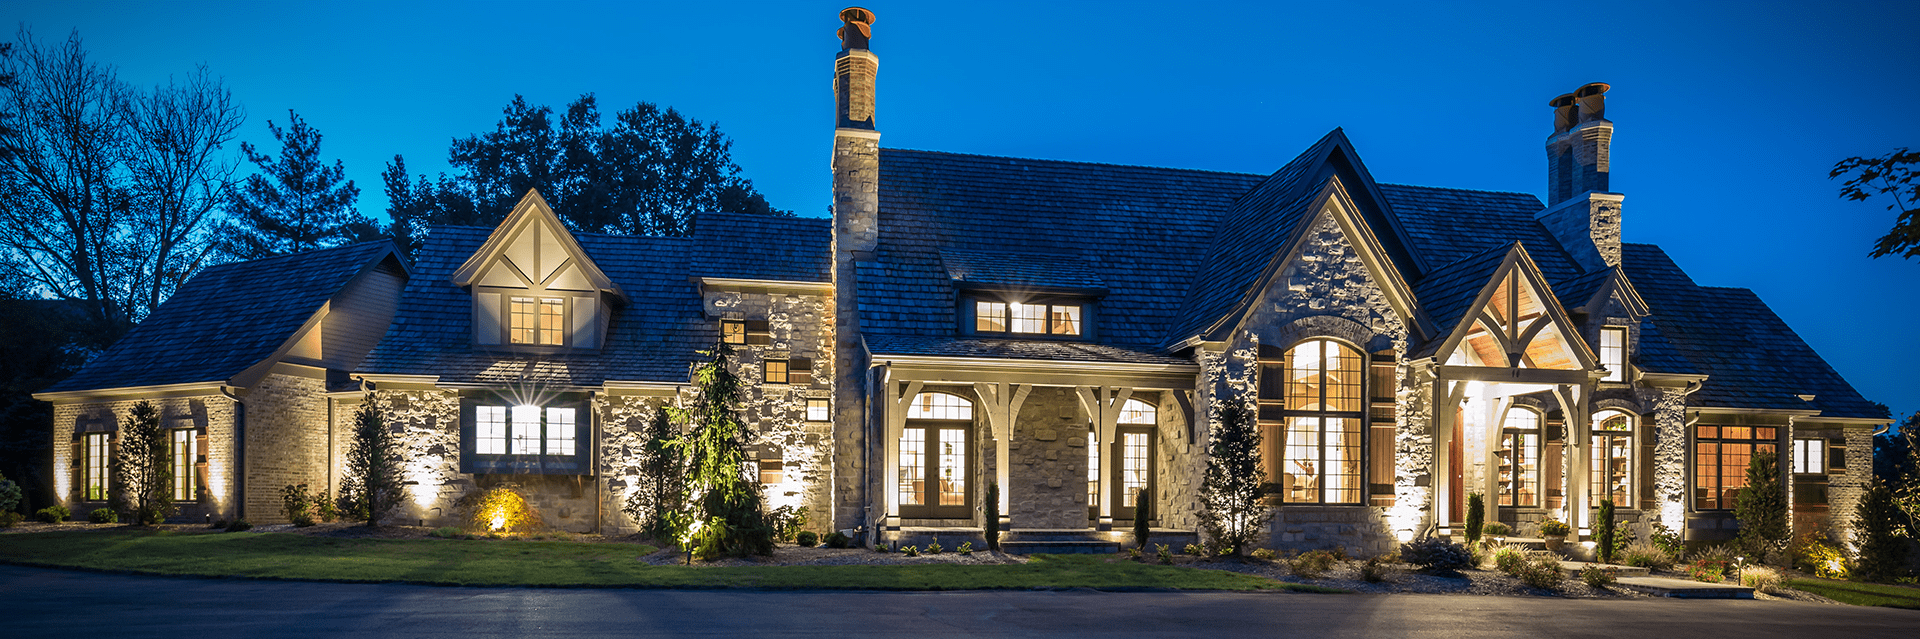 Outdoor Landscape Lighting St. Charles by Frisella Lighting